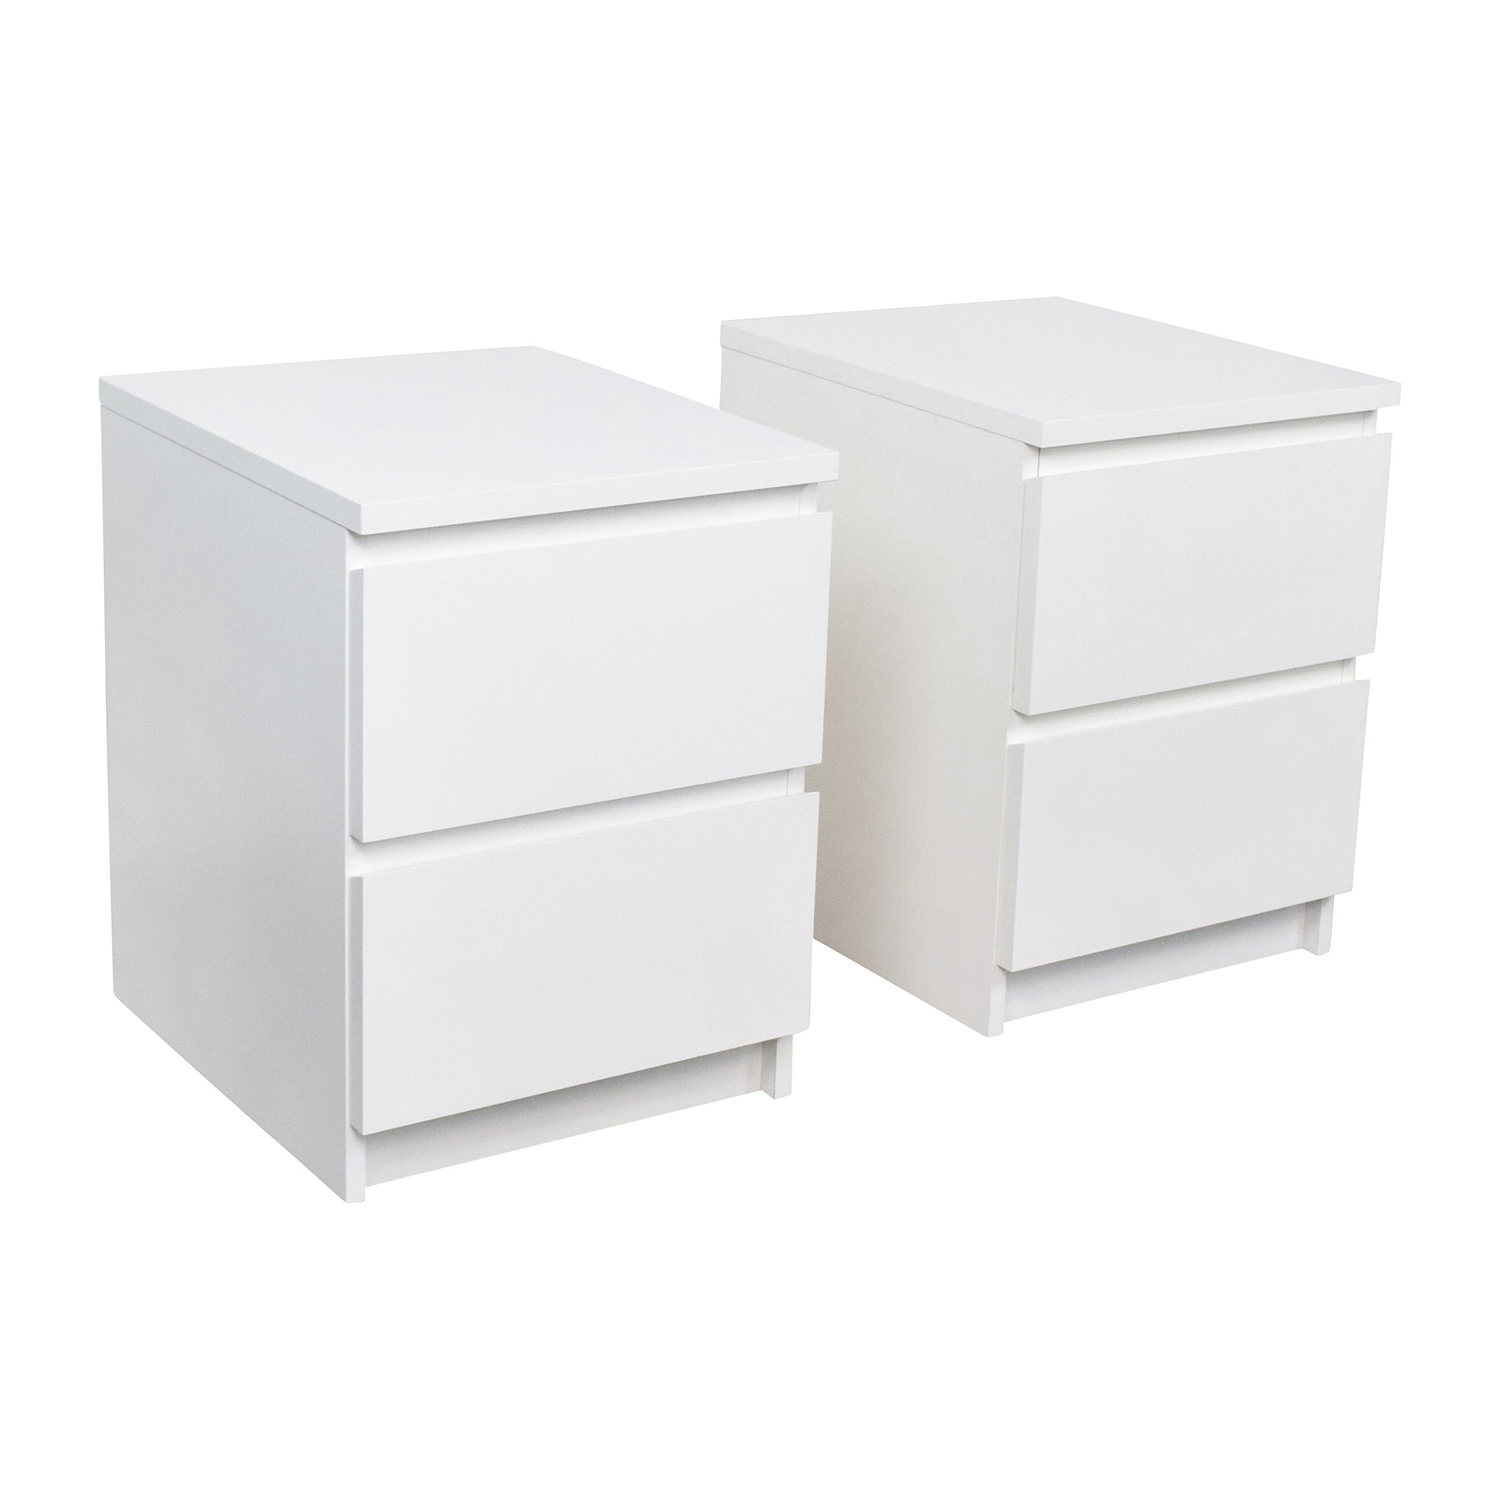 40 off ikea ikea malm white two drawer end tables tables. Black Bedroom Furniture Sets. Home Design Ideas